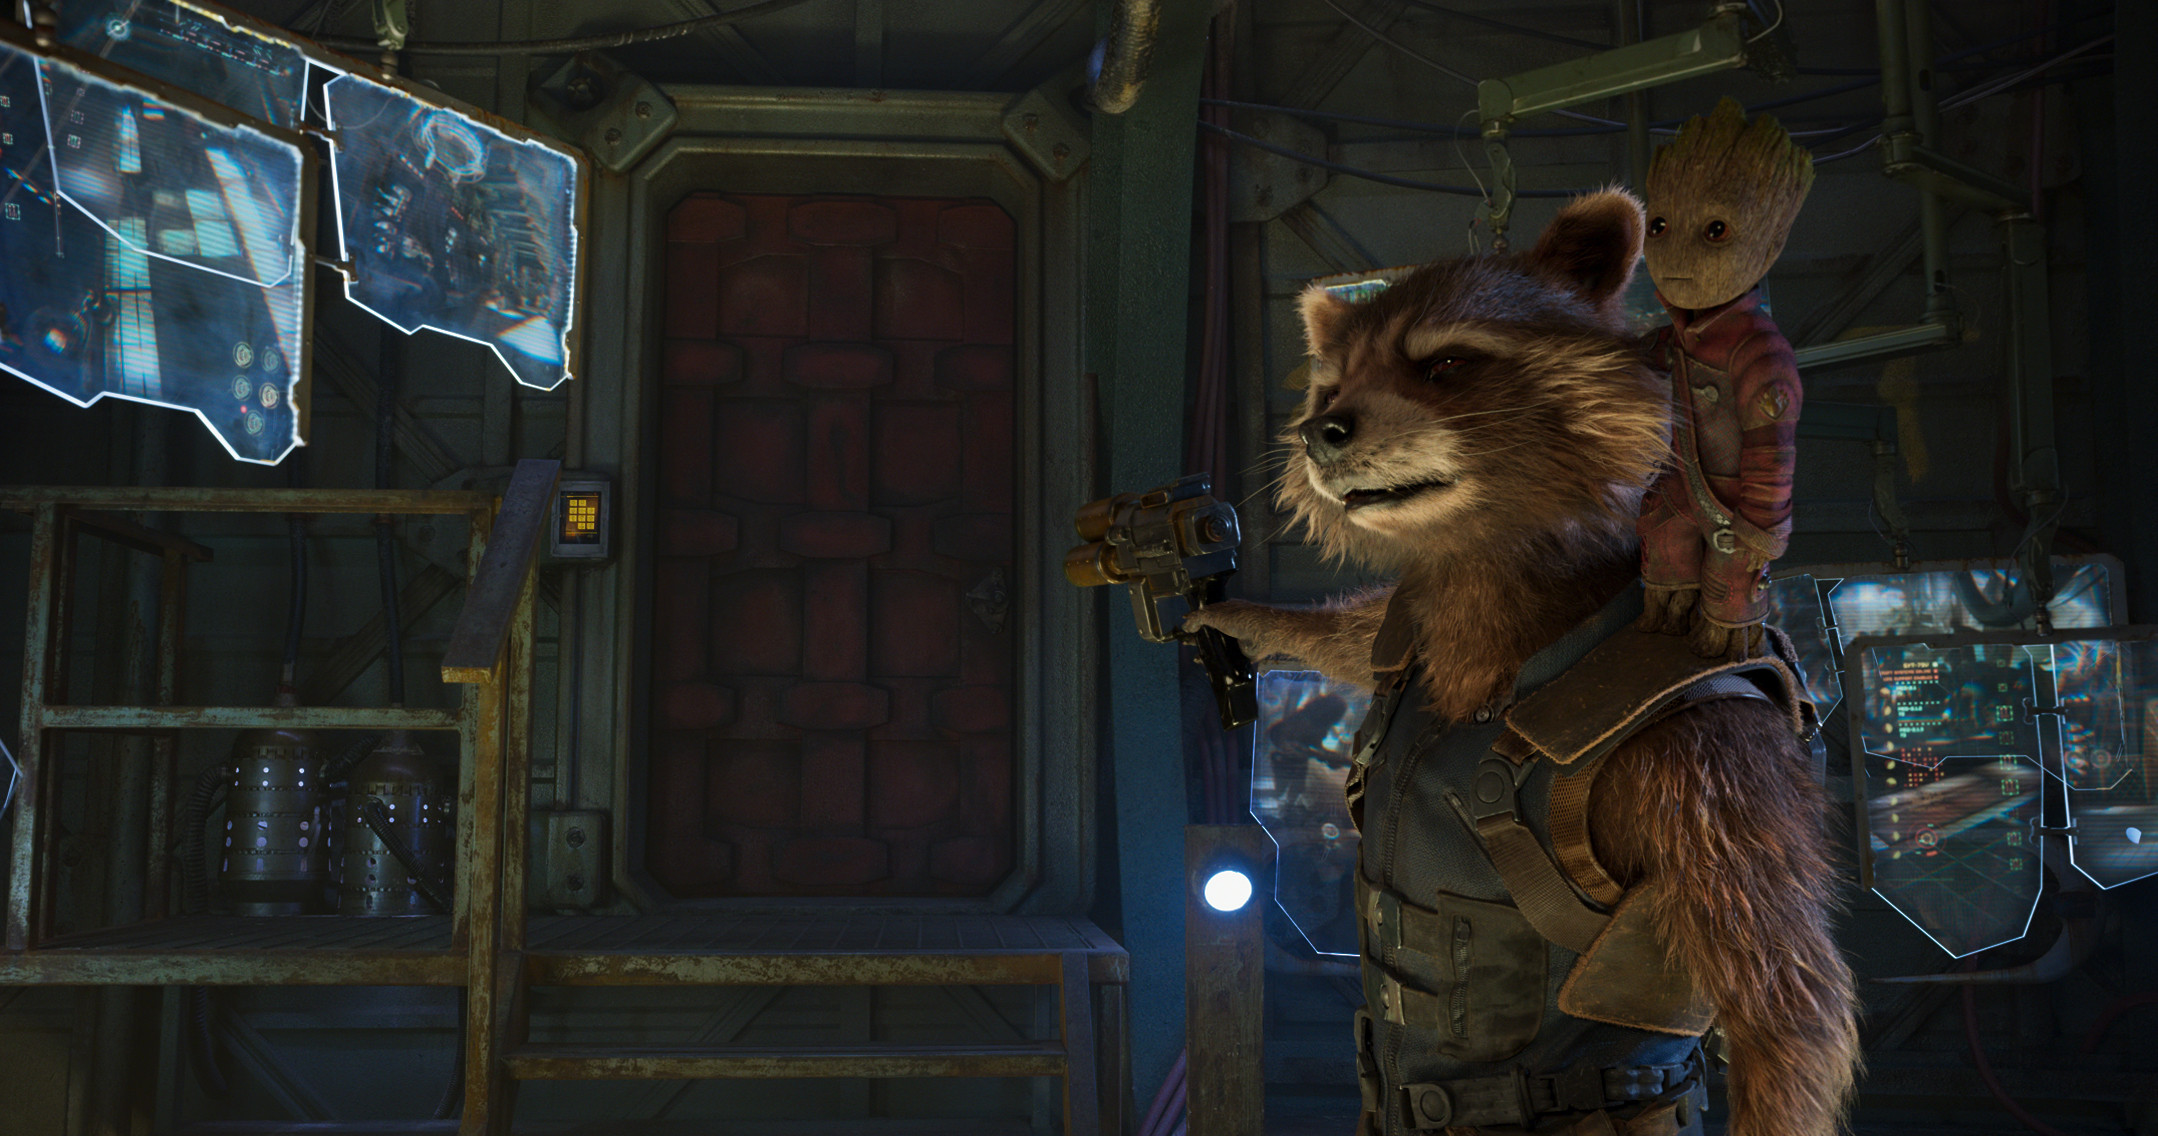 320x240 Baby Groot And Rocket Raccoon In Guardians Of The Galaxy Vol